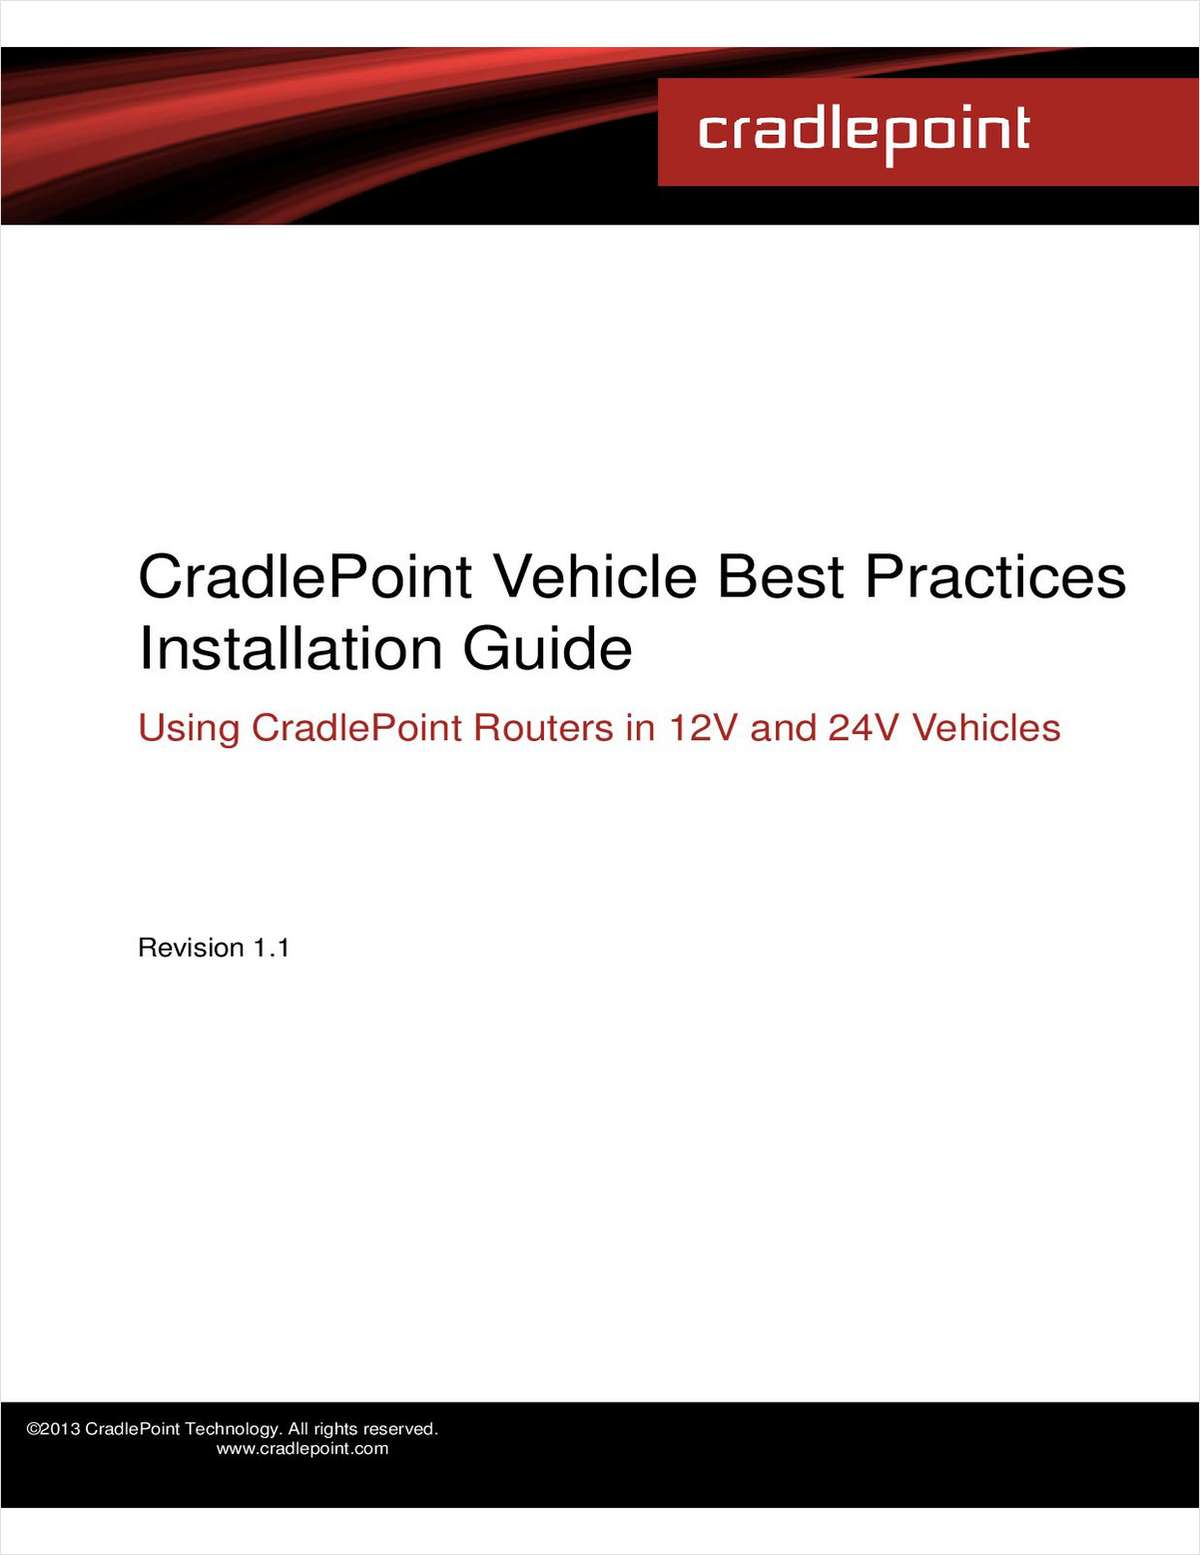 Vehicles Best Practices Installation Guide